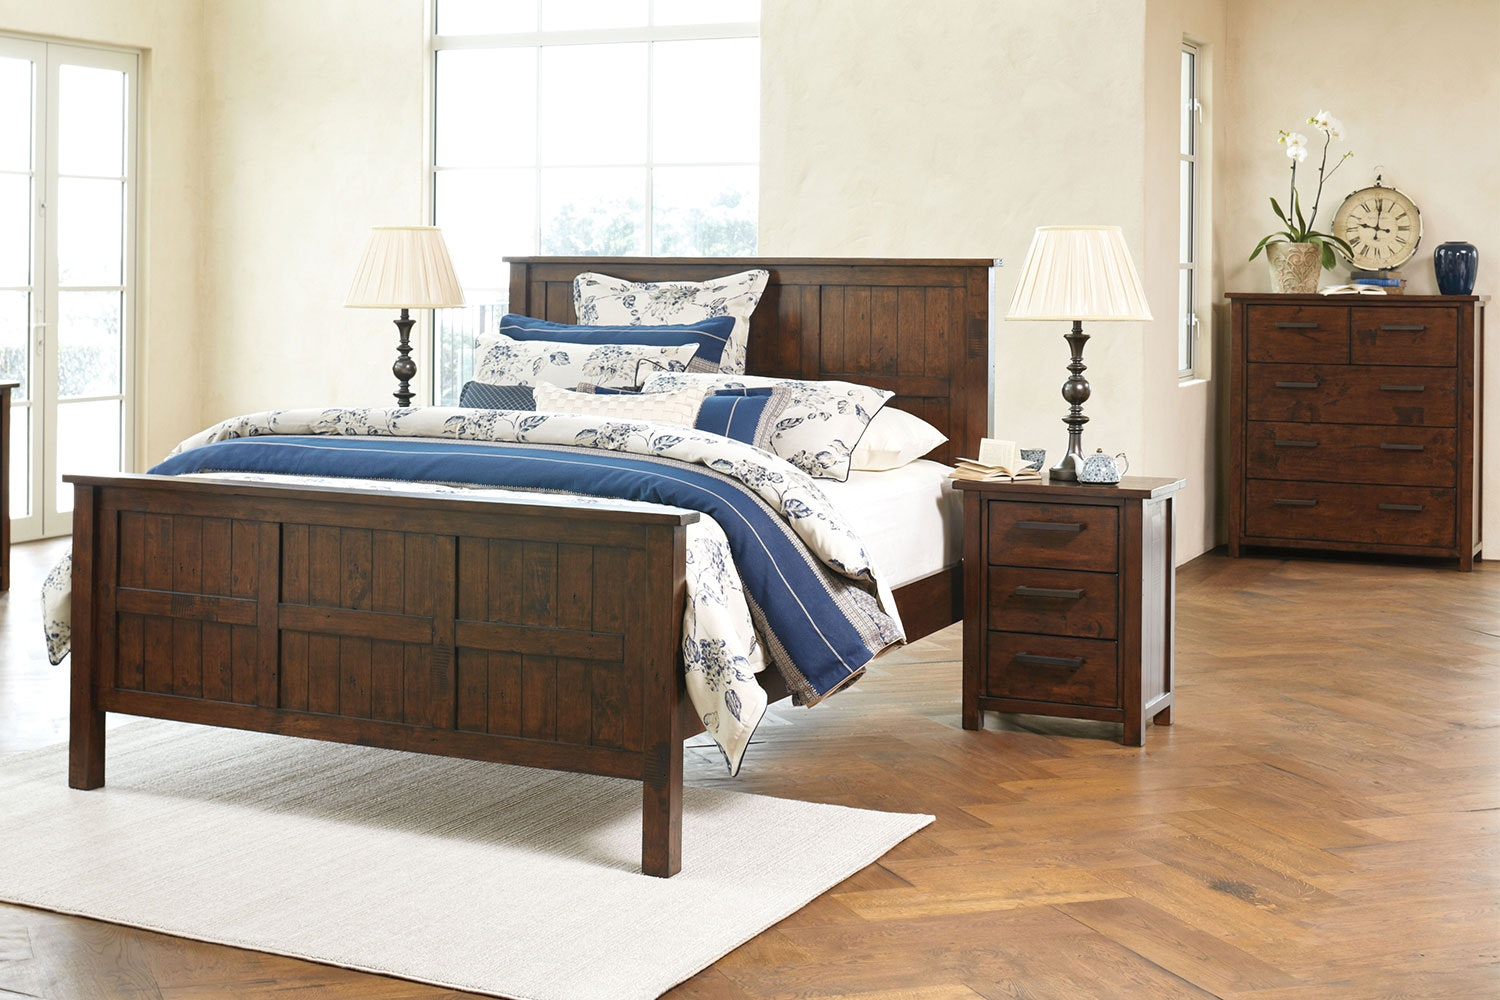 Farmhouse 4 Piece Bedroom Suite by John Young Furniture